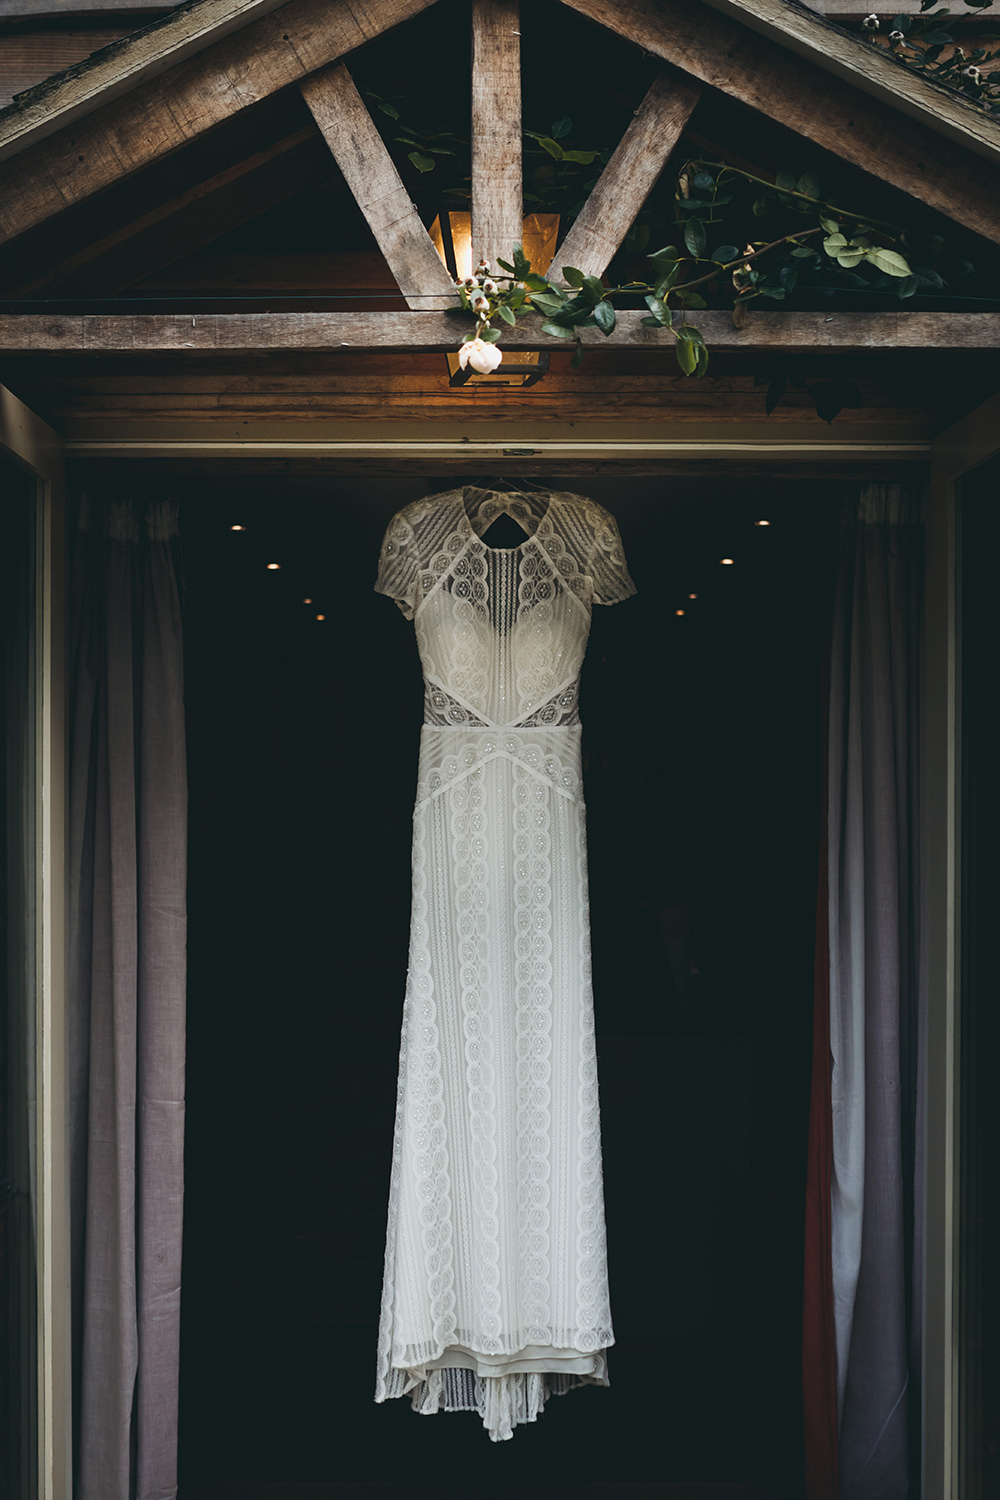 Dress Gown Bride Bridal Lace Lenora Watters Wtoo Beaded Cap Sleeves Autumnal Rustic Wedding Mark Tattersall Photography